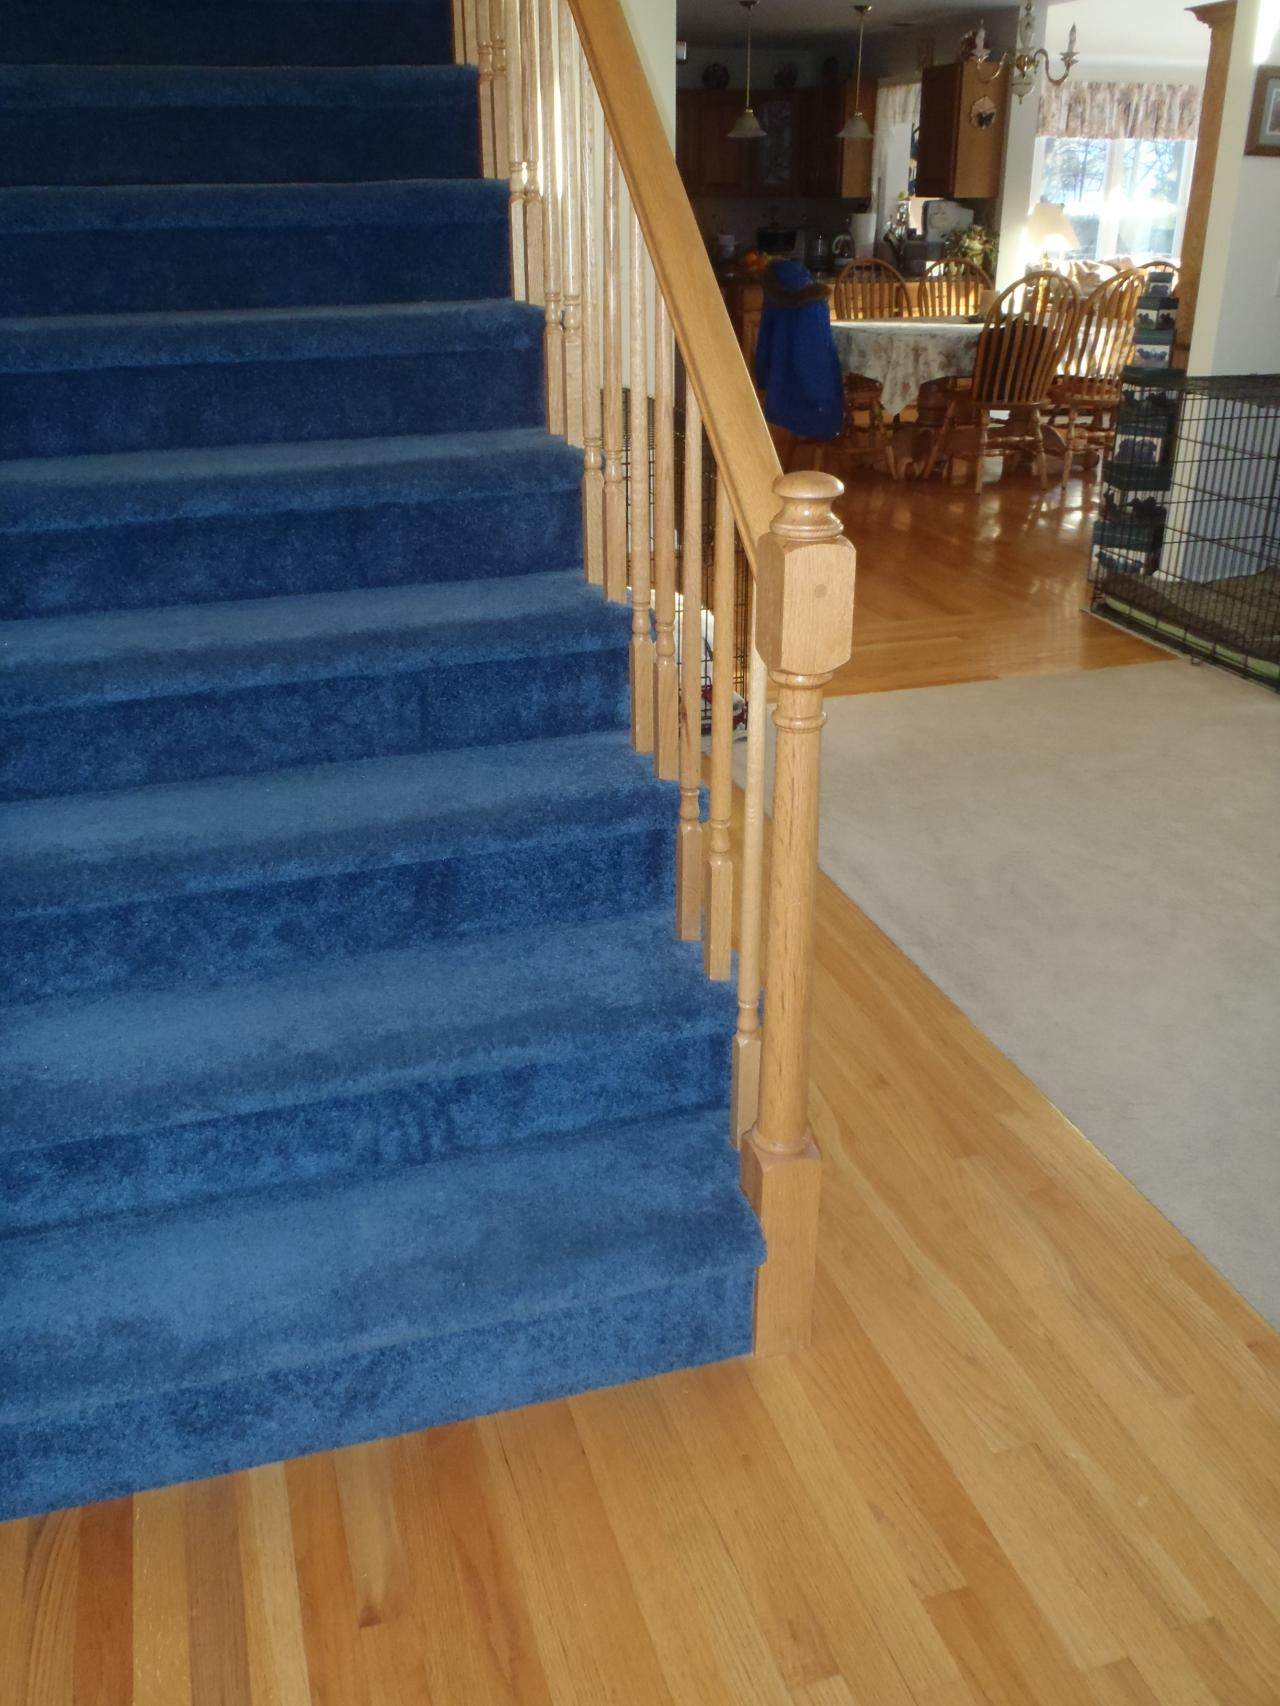 Bennett Stair Company Inc Remodels Nustair Installations   Blue Carpet On Stairs   Wooden   Grey Stair White Wall   Antelope   Geometric   Gray